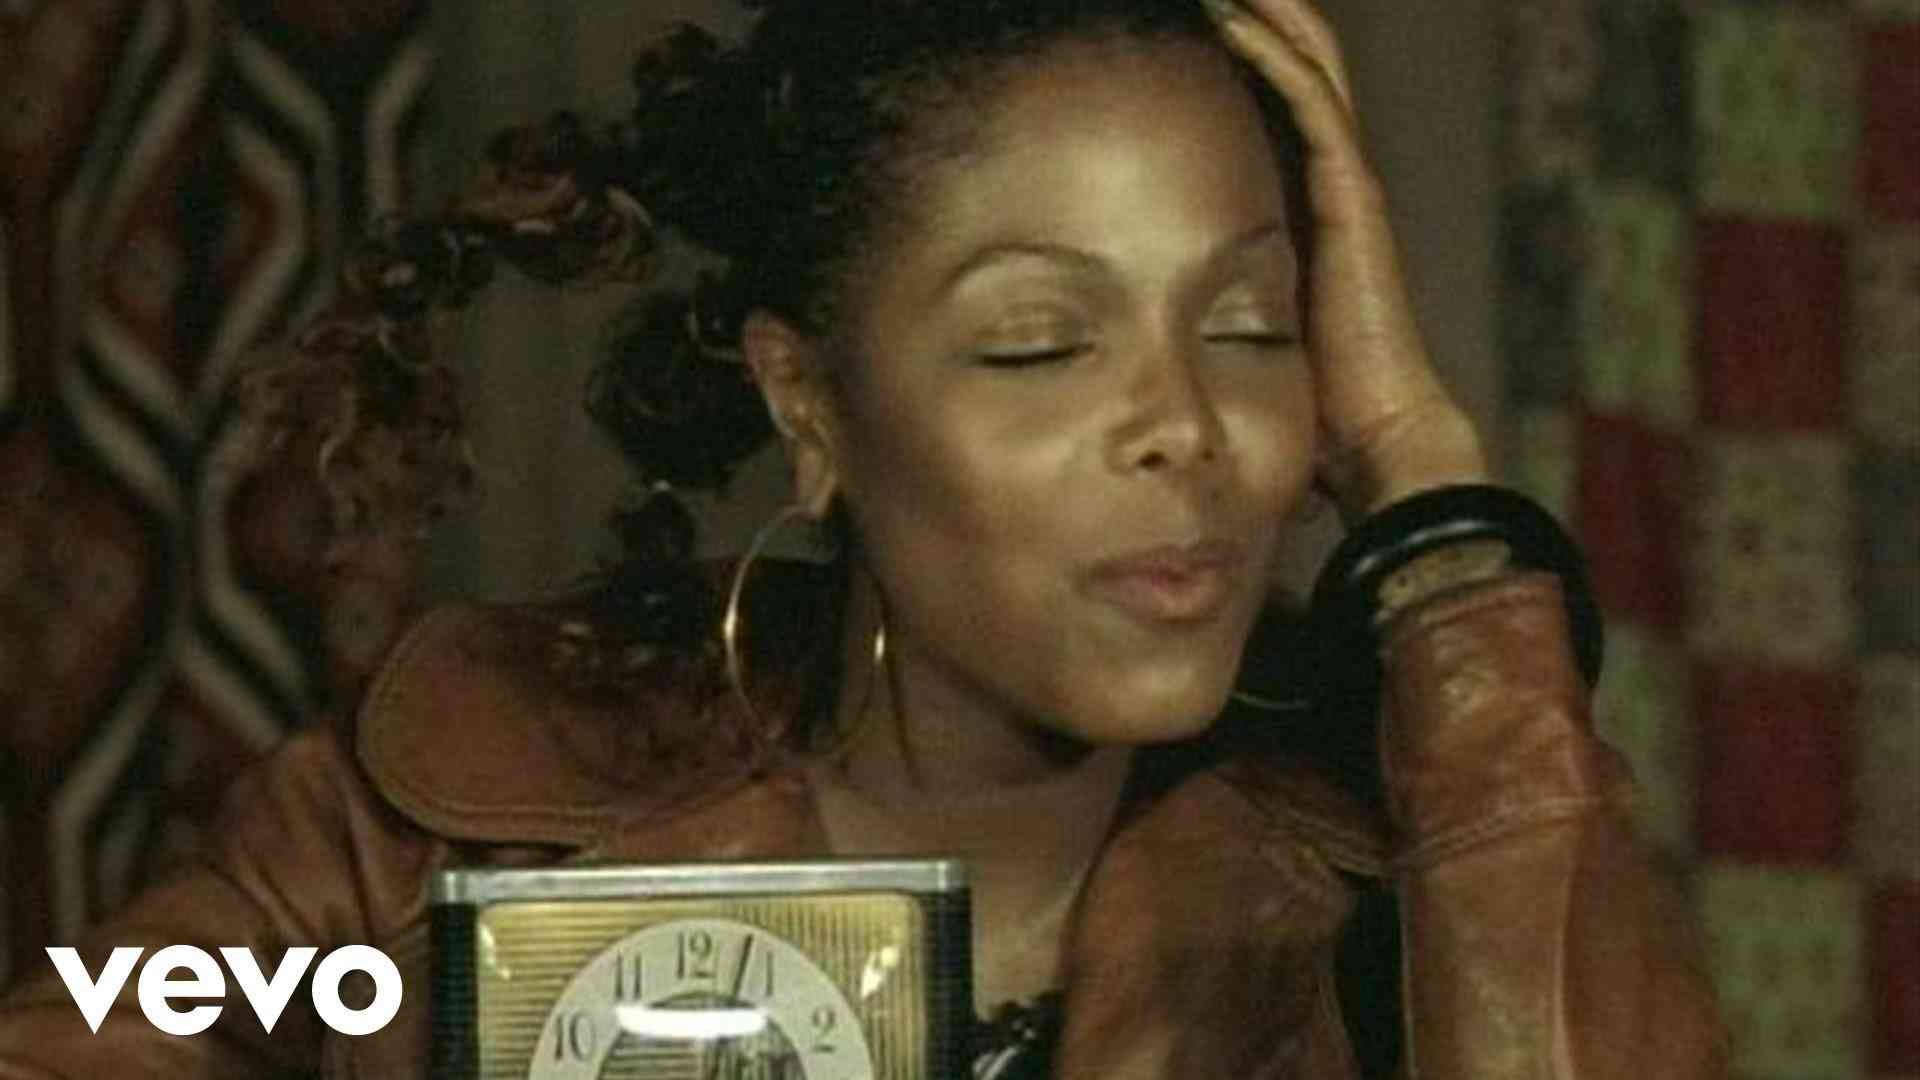 Janet Jackson - Got Til It's Gone - YouTube